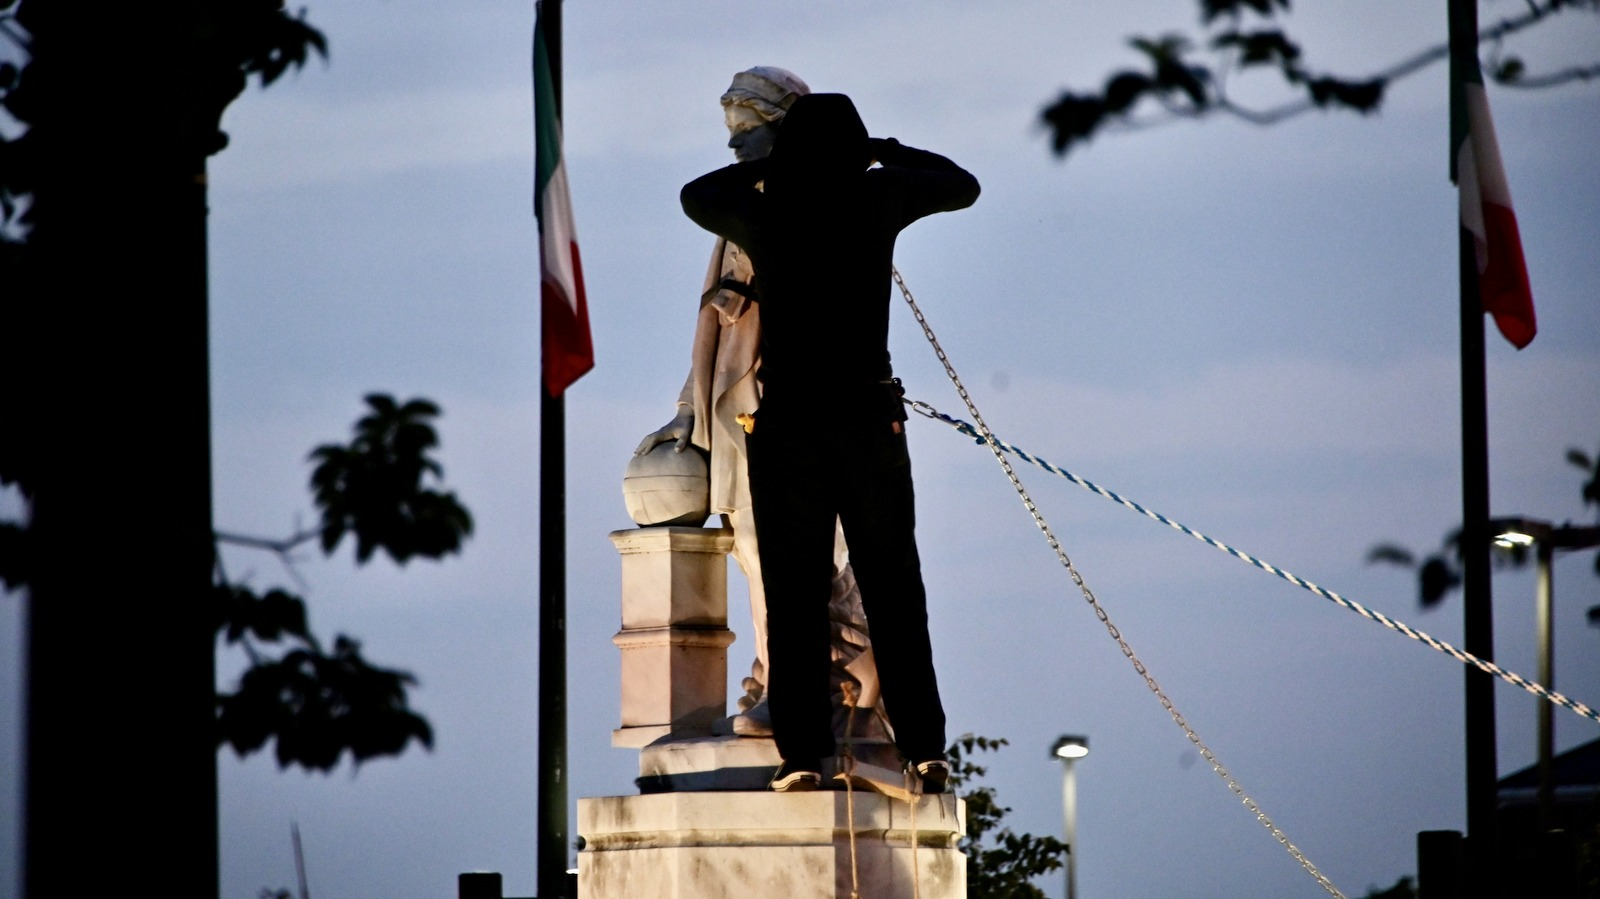 A protester prepares the Columbus statue to be toppled. (J.M. Giordano)